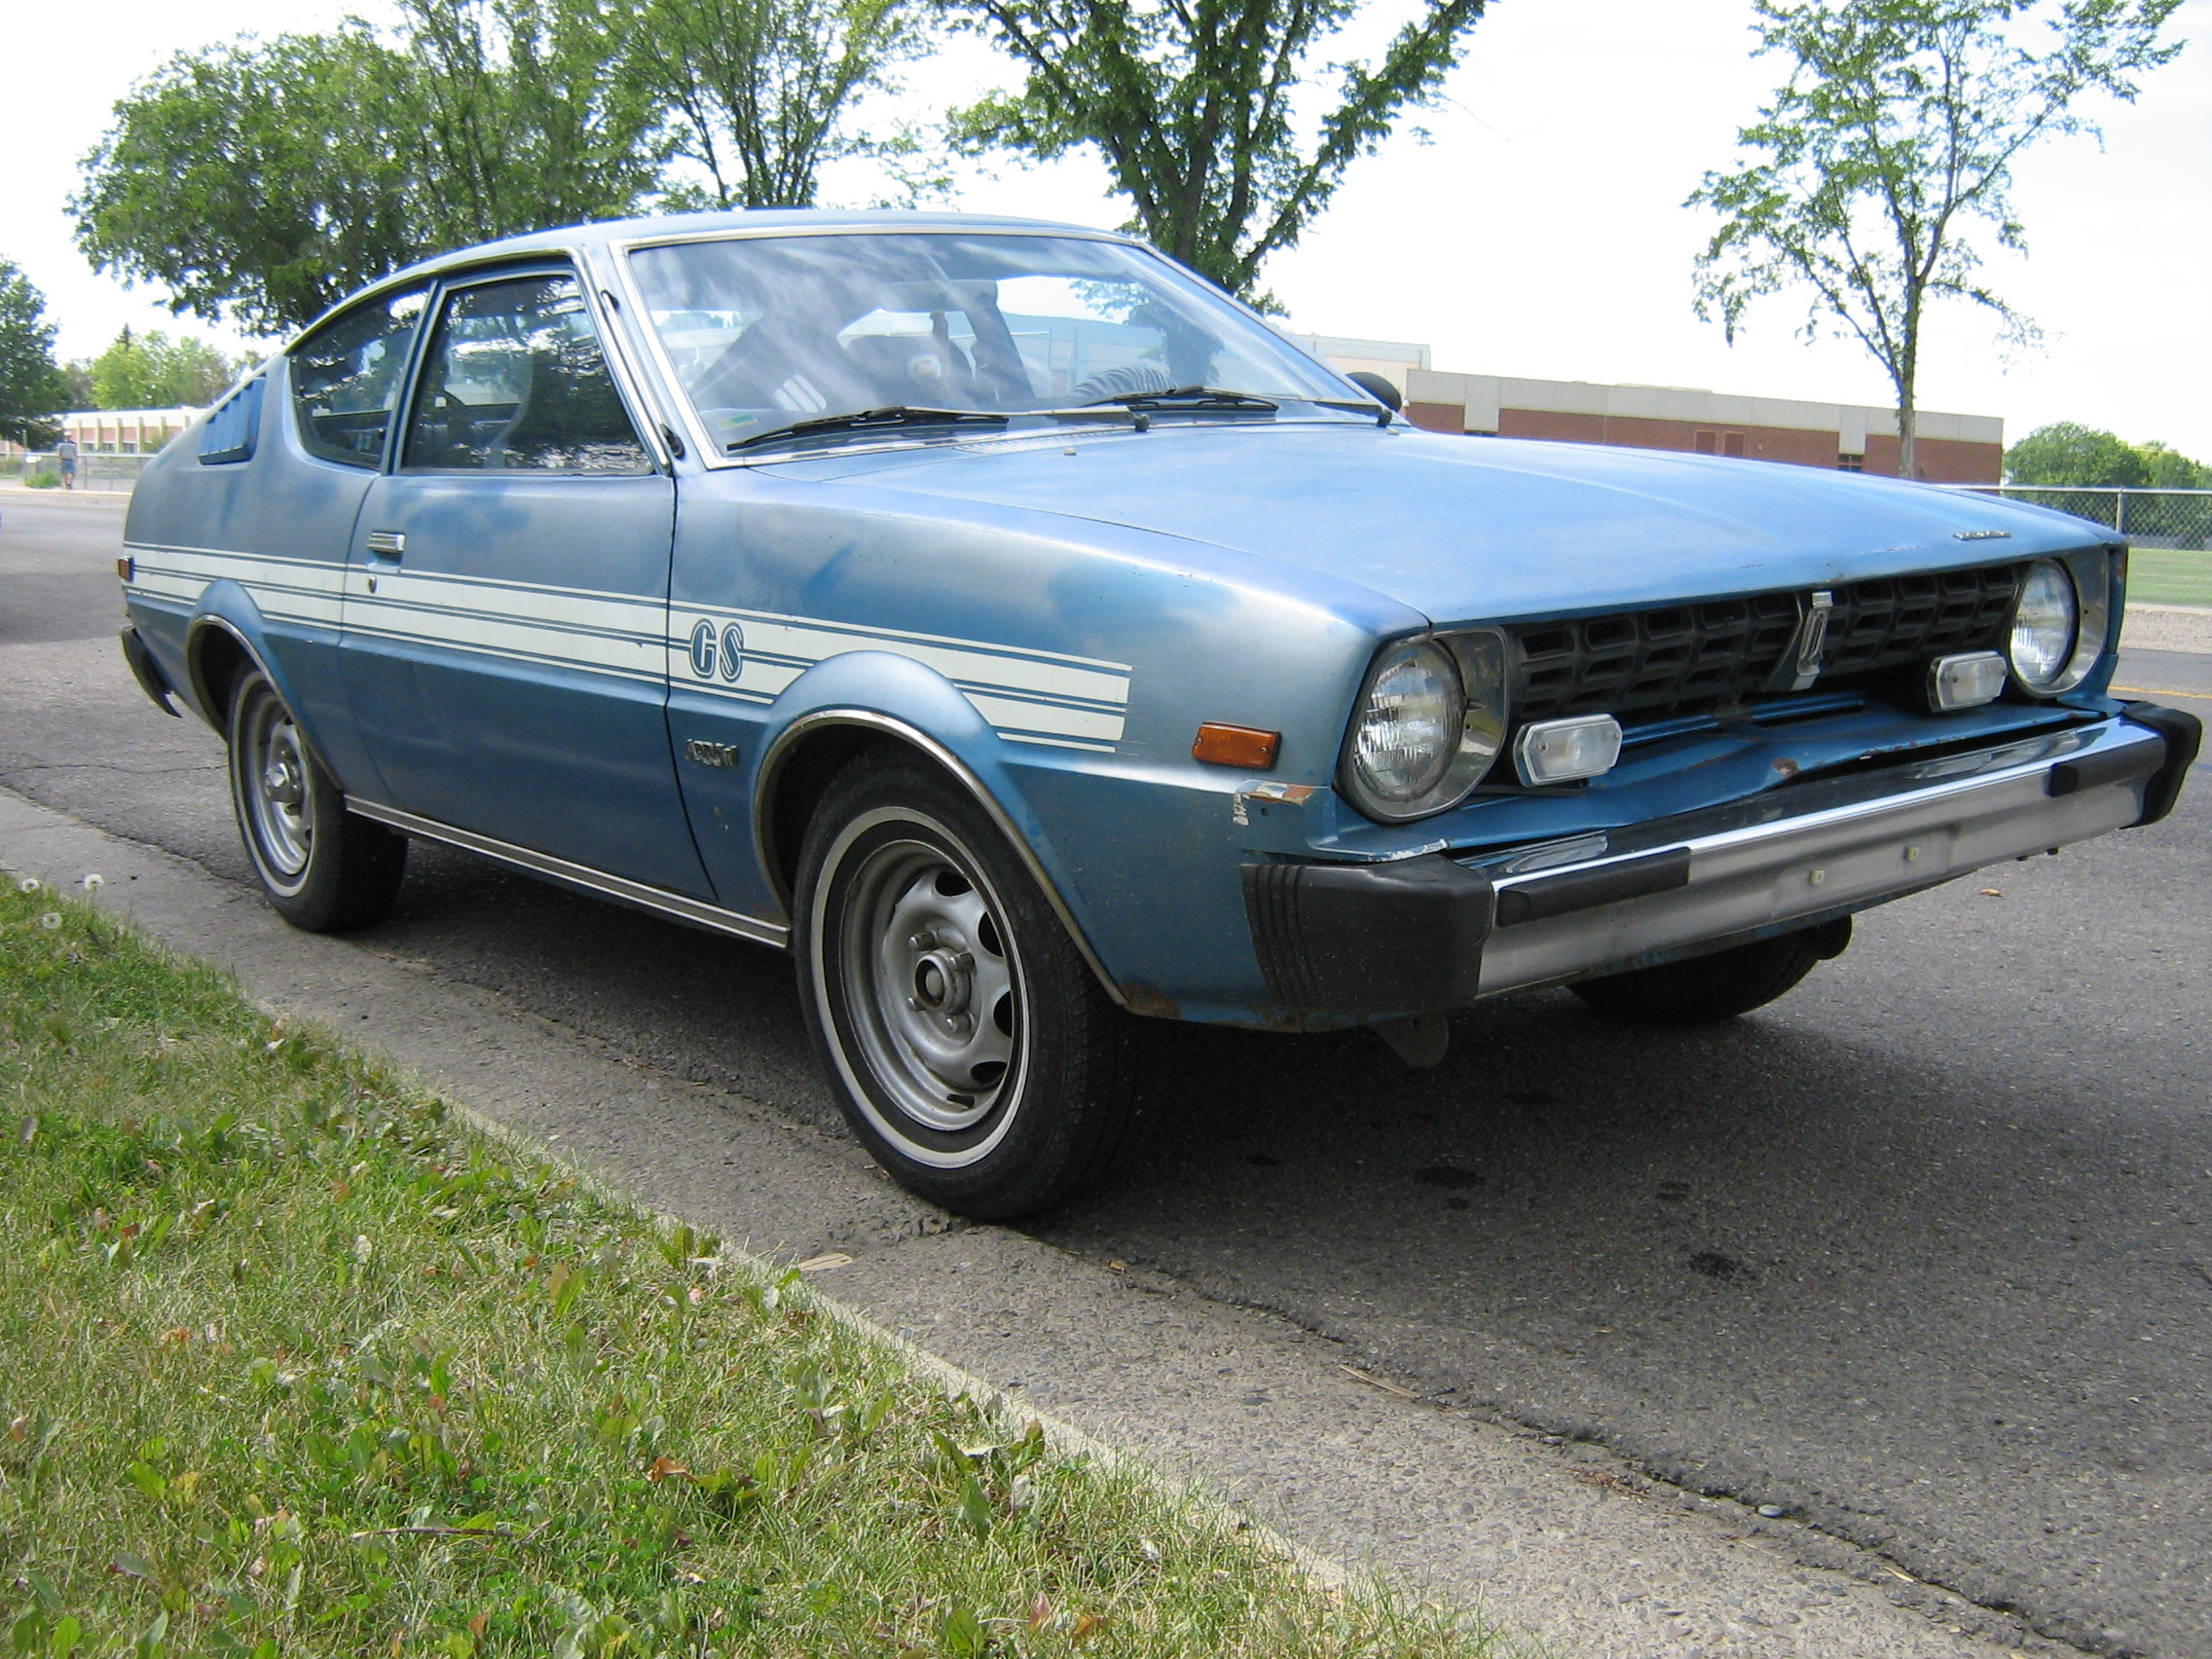 plymouth-arrow-1981-15.jpg